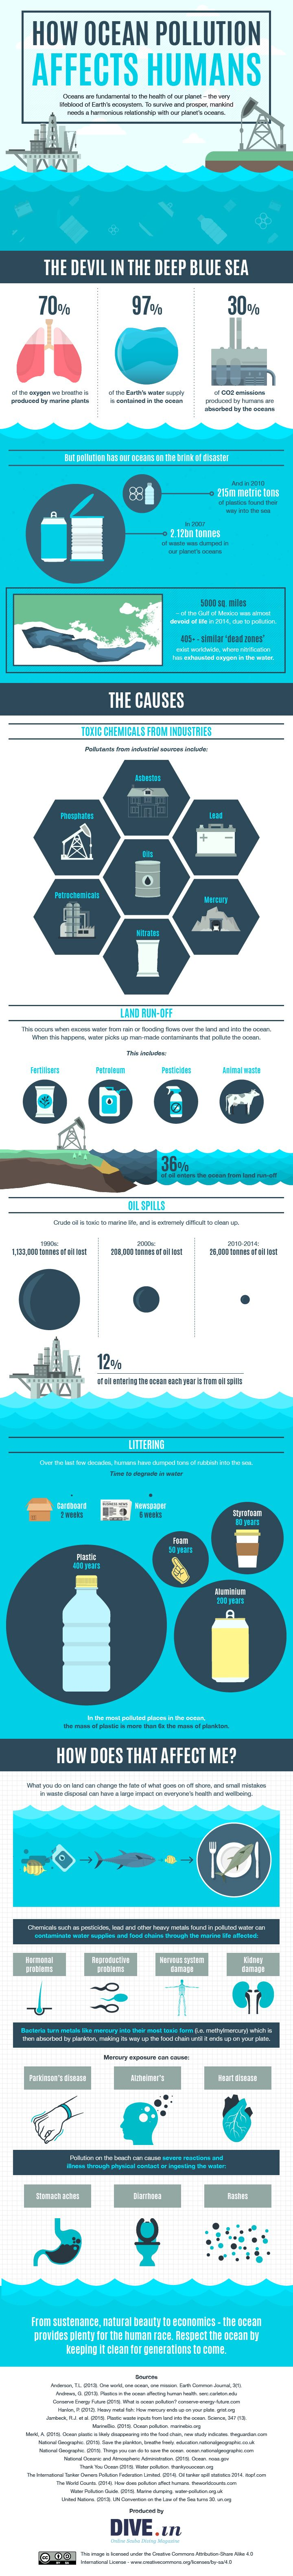 How ocean pollution affects humans #infographic #Pollution #Environment